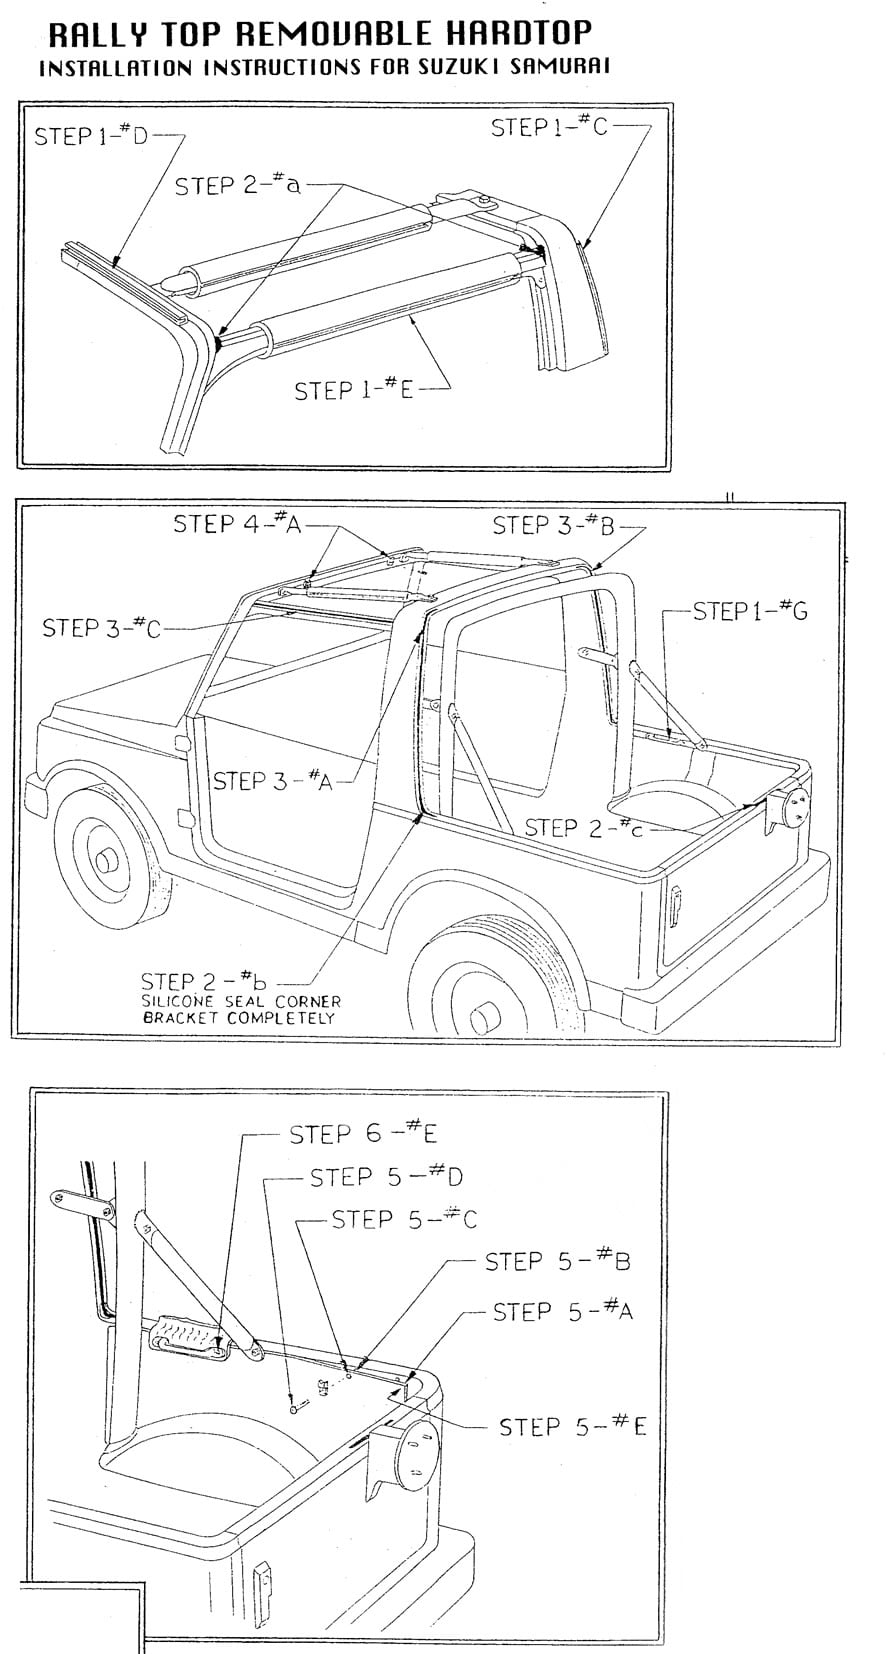 Installation Instructions For Suzuki Samurai 1 Piece Hardtops